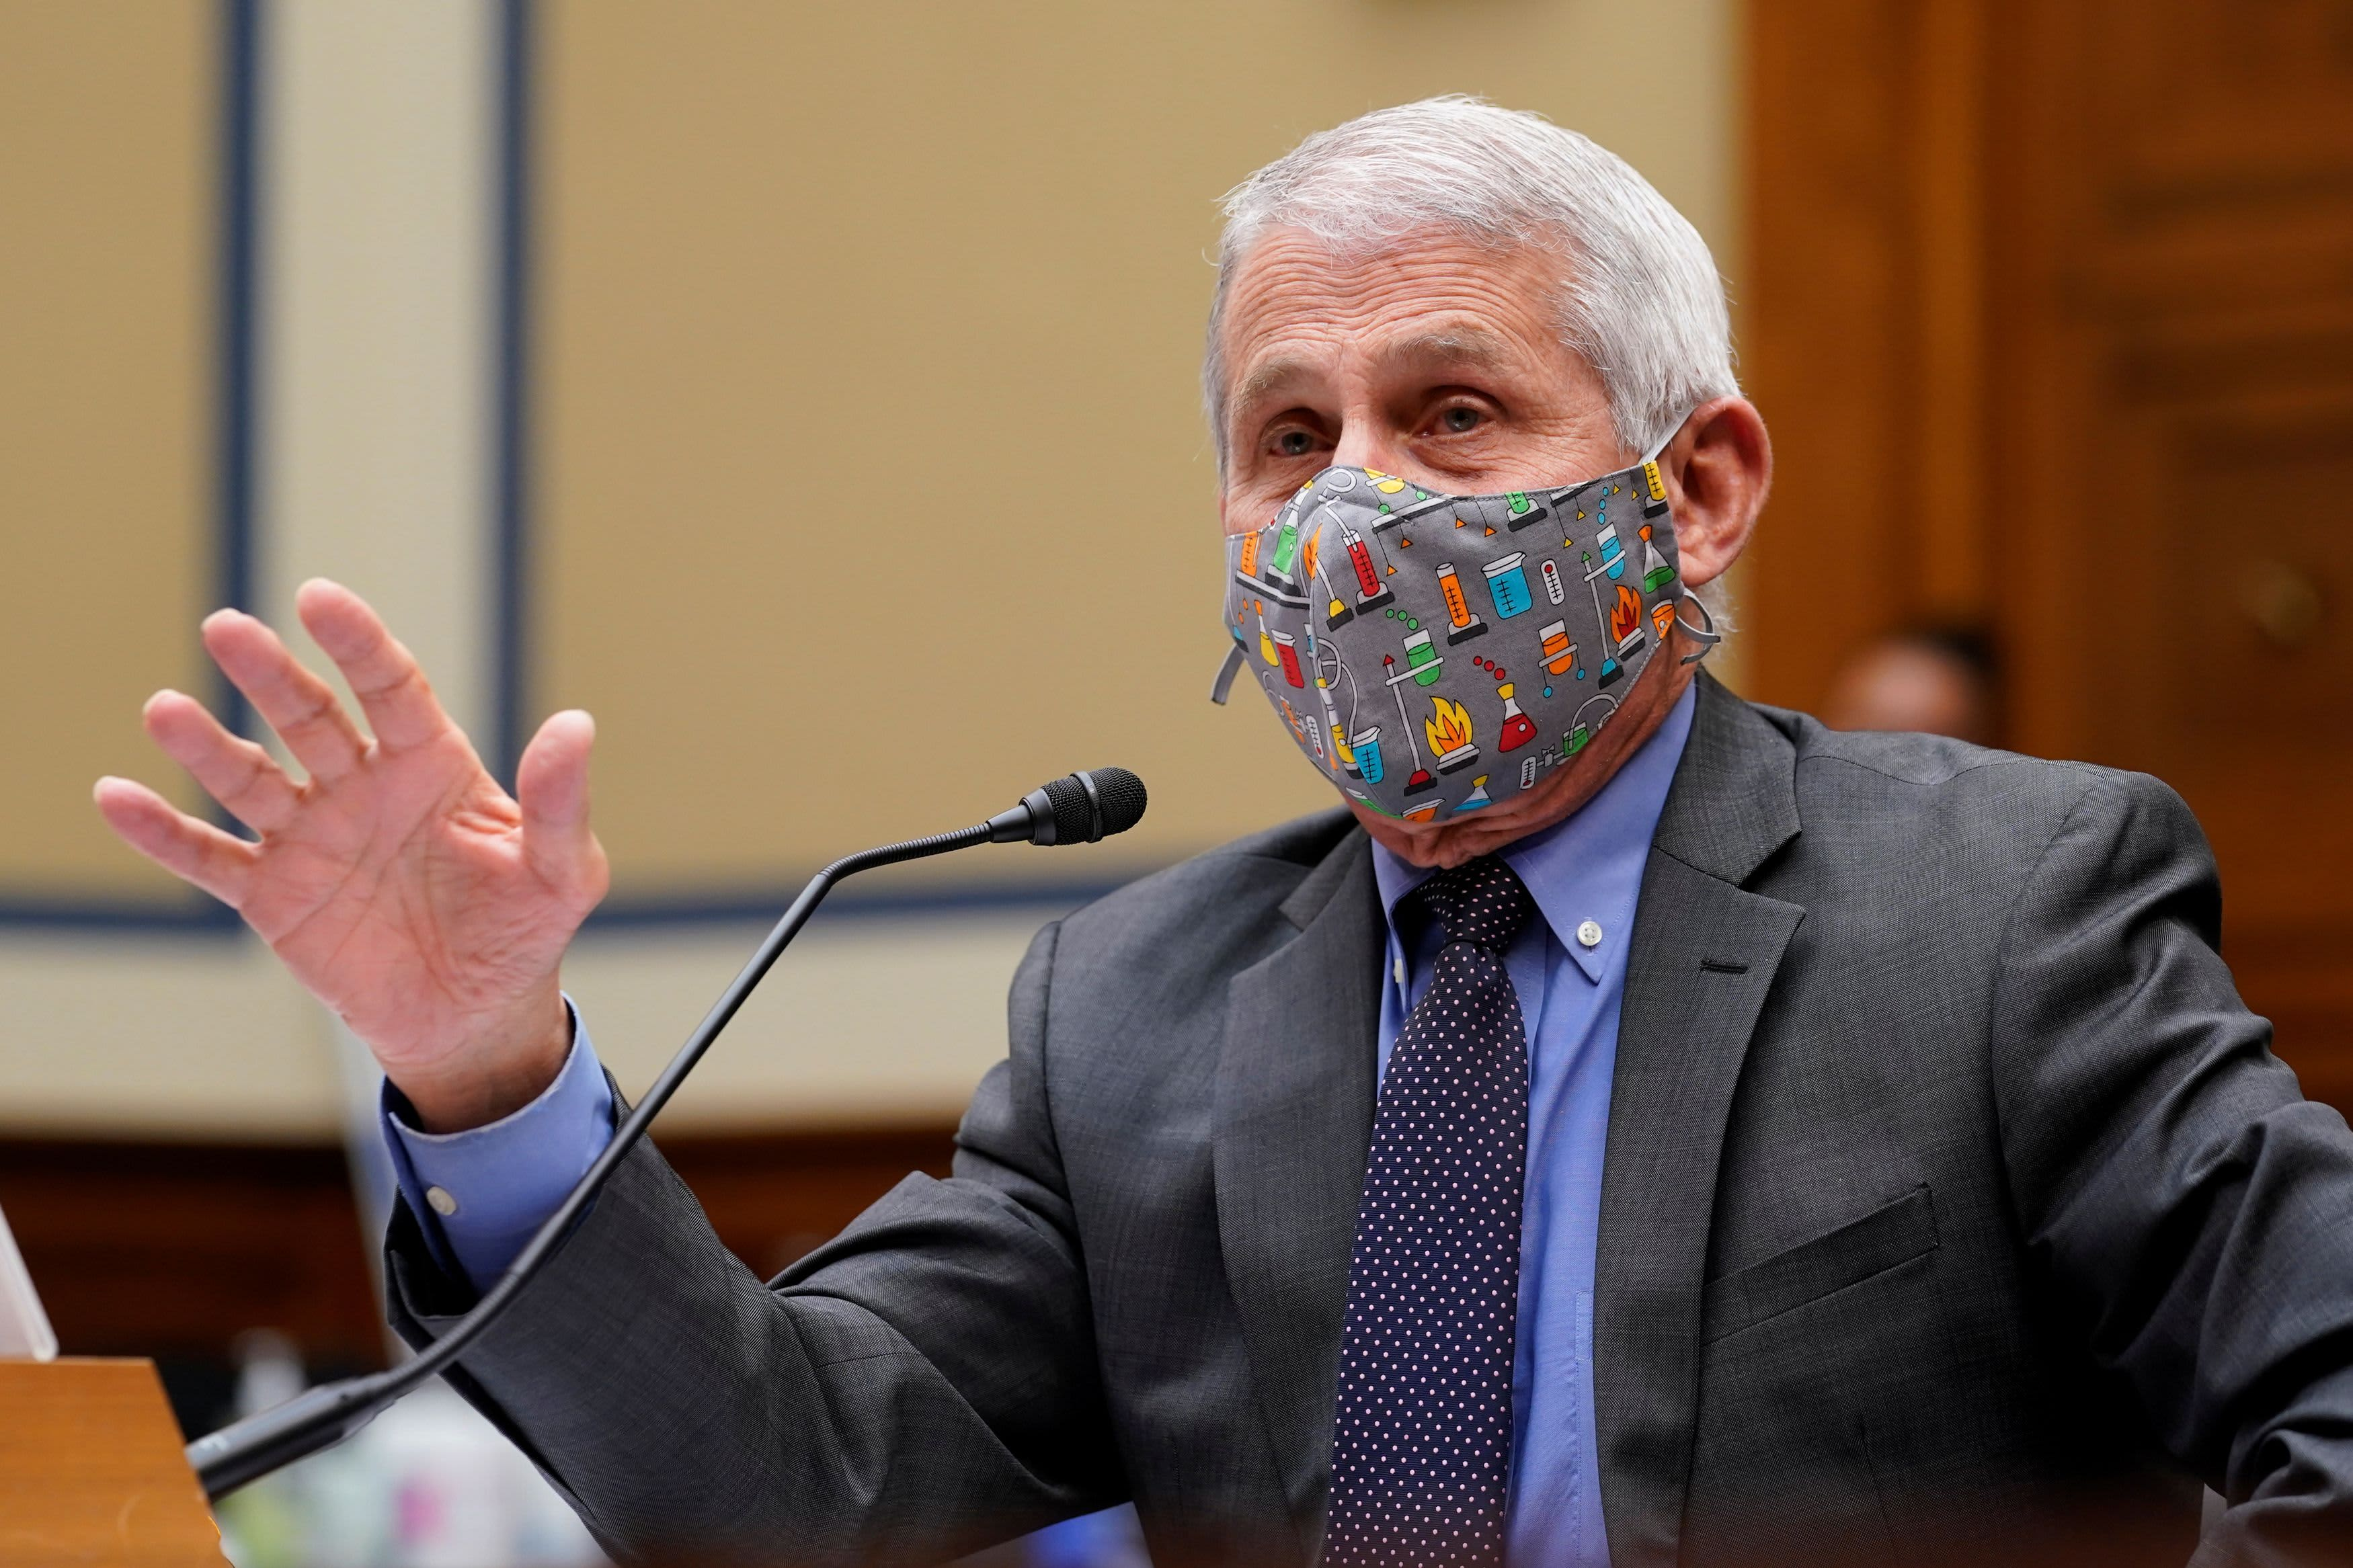 Fauci says face masks could become seasonal after Covid pandemic – CNBC